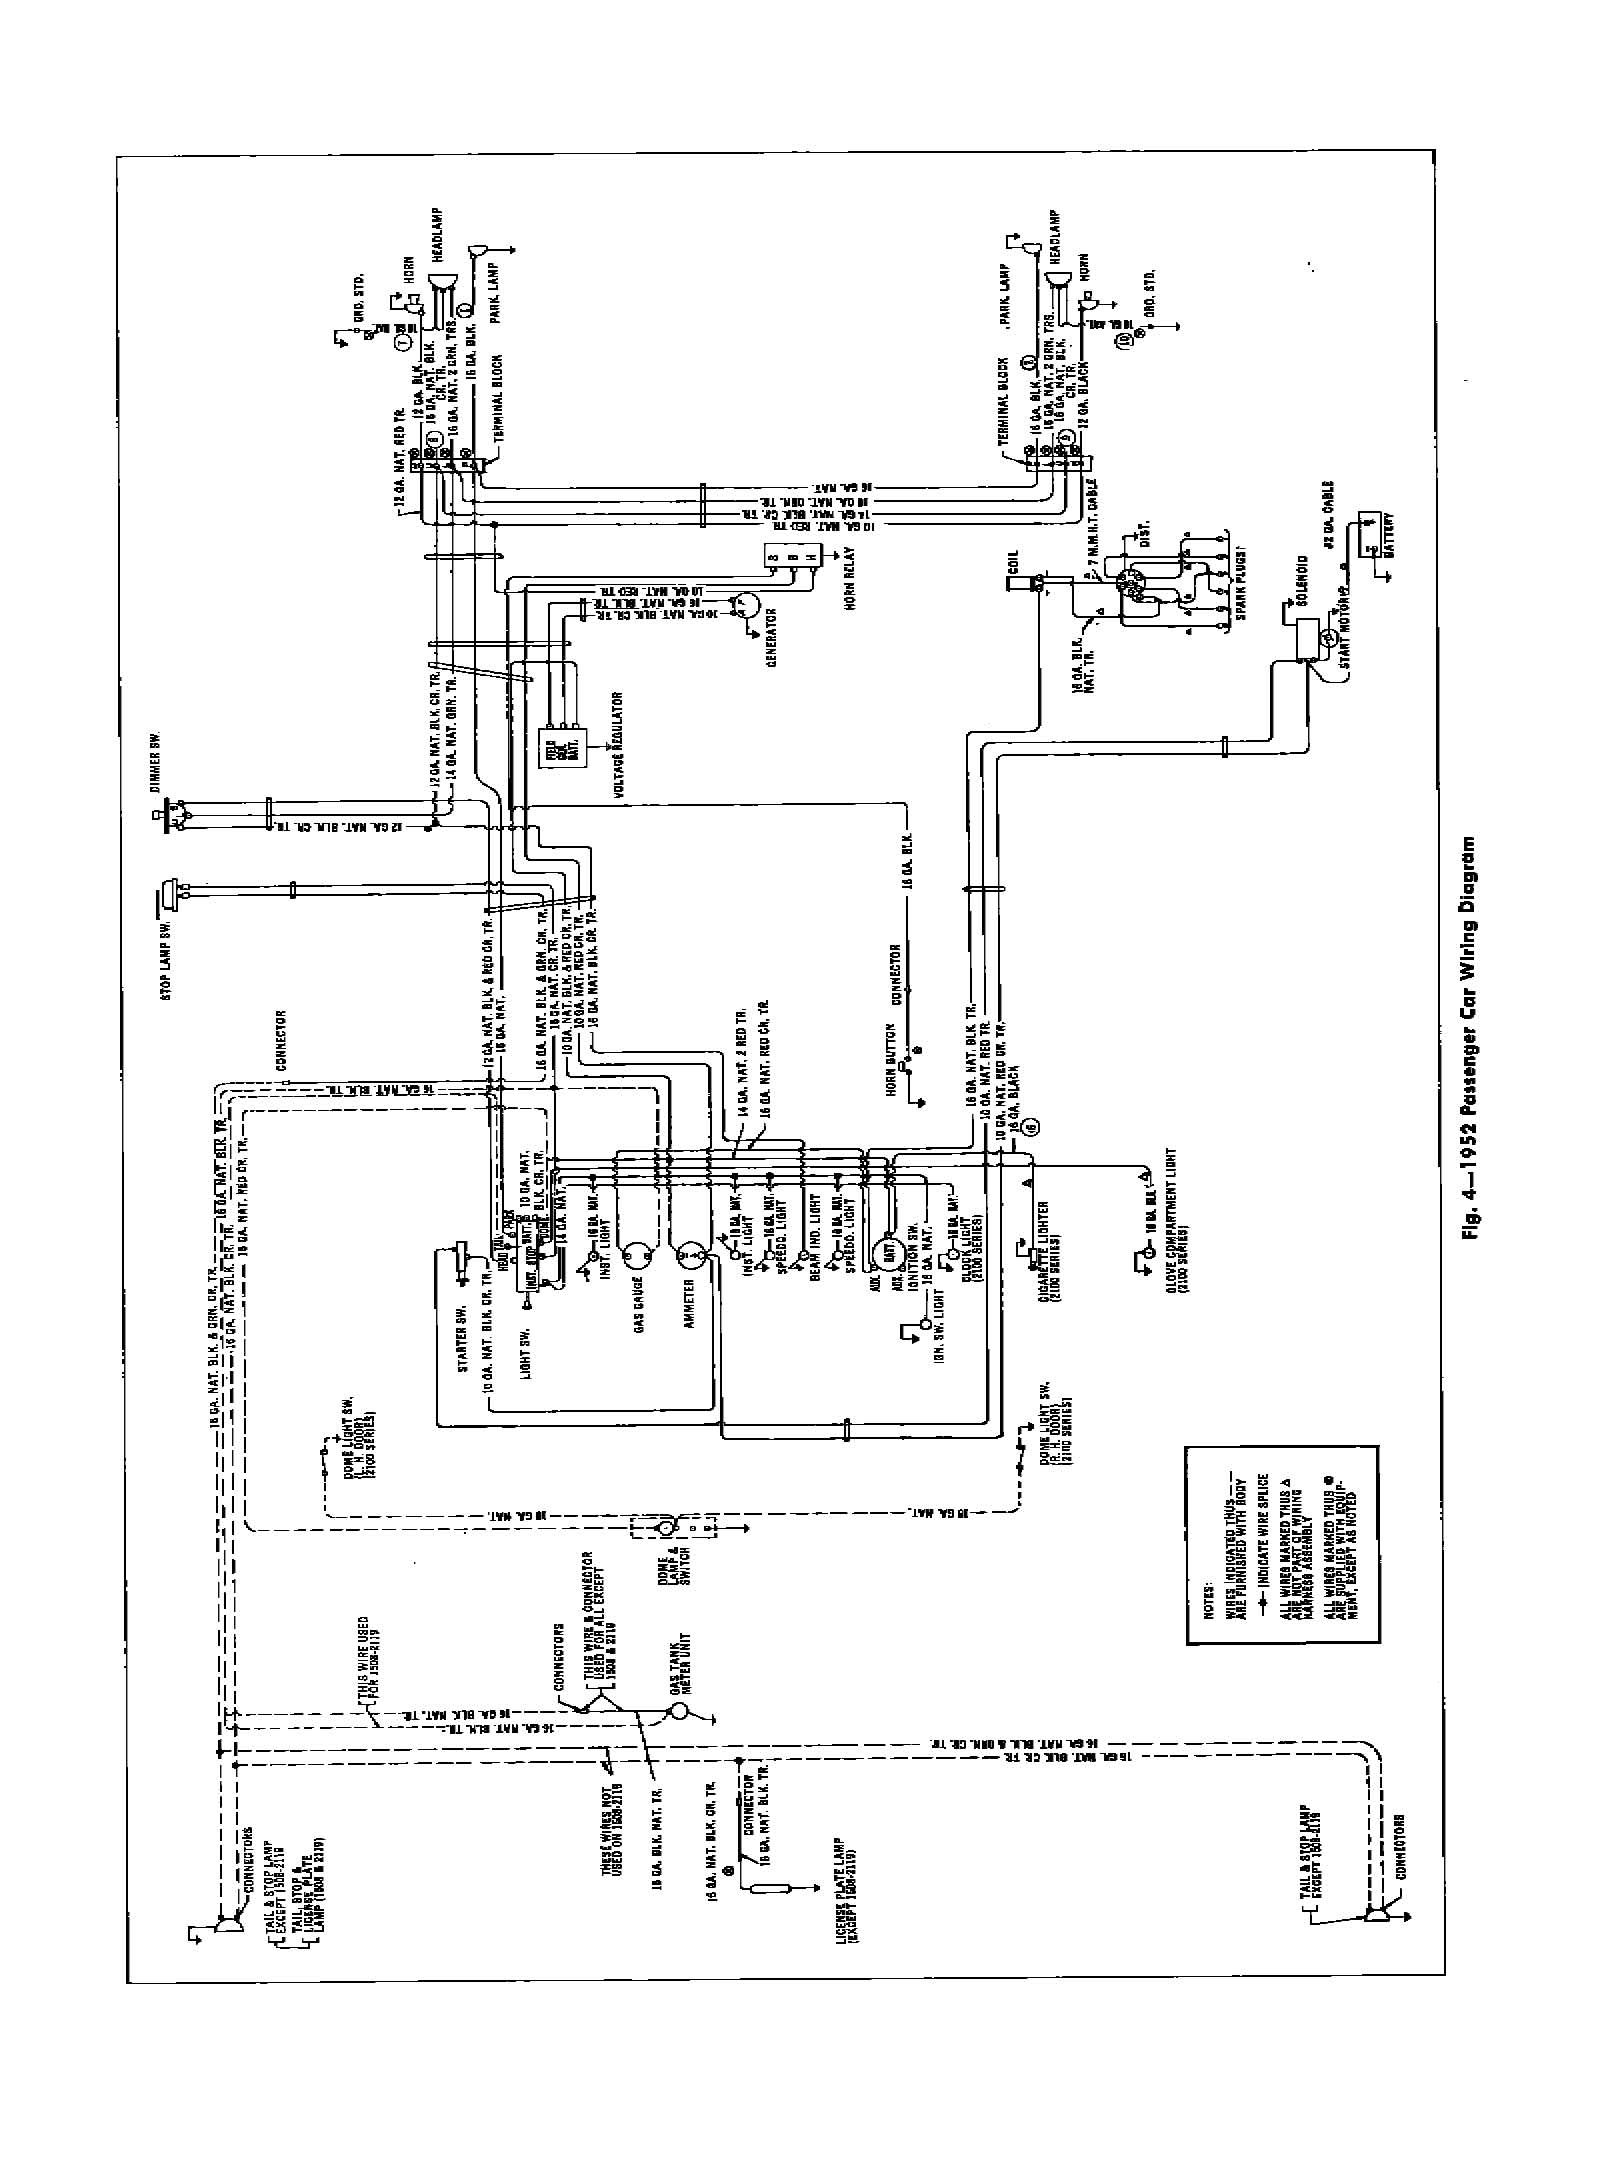 Diagram  1943 Willys Jeep Wiring Diagram Full Version Hd